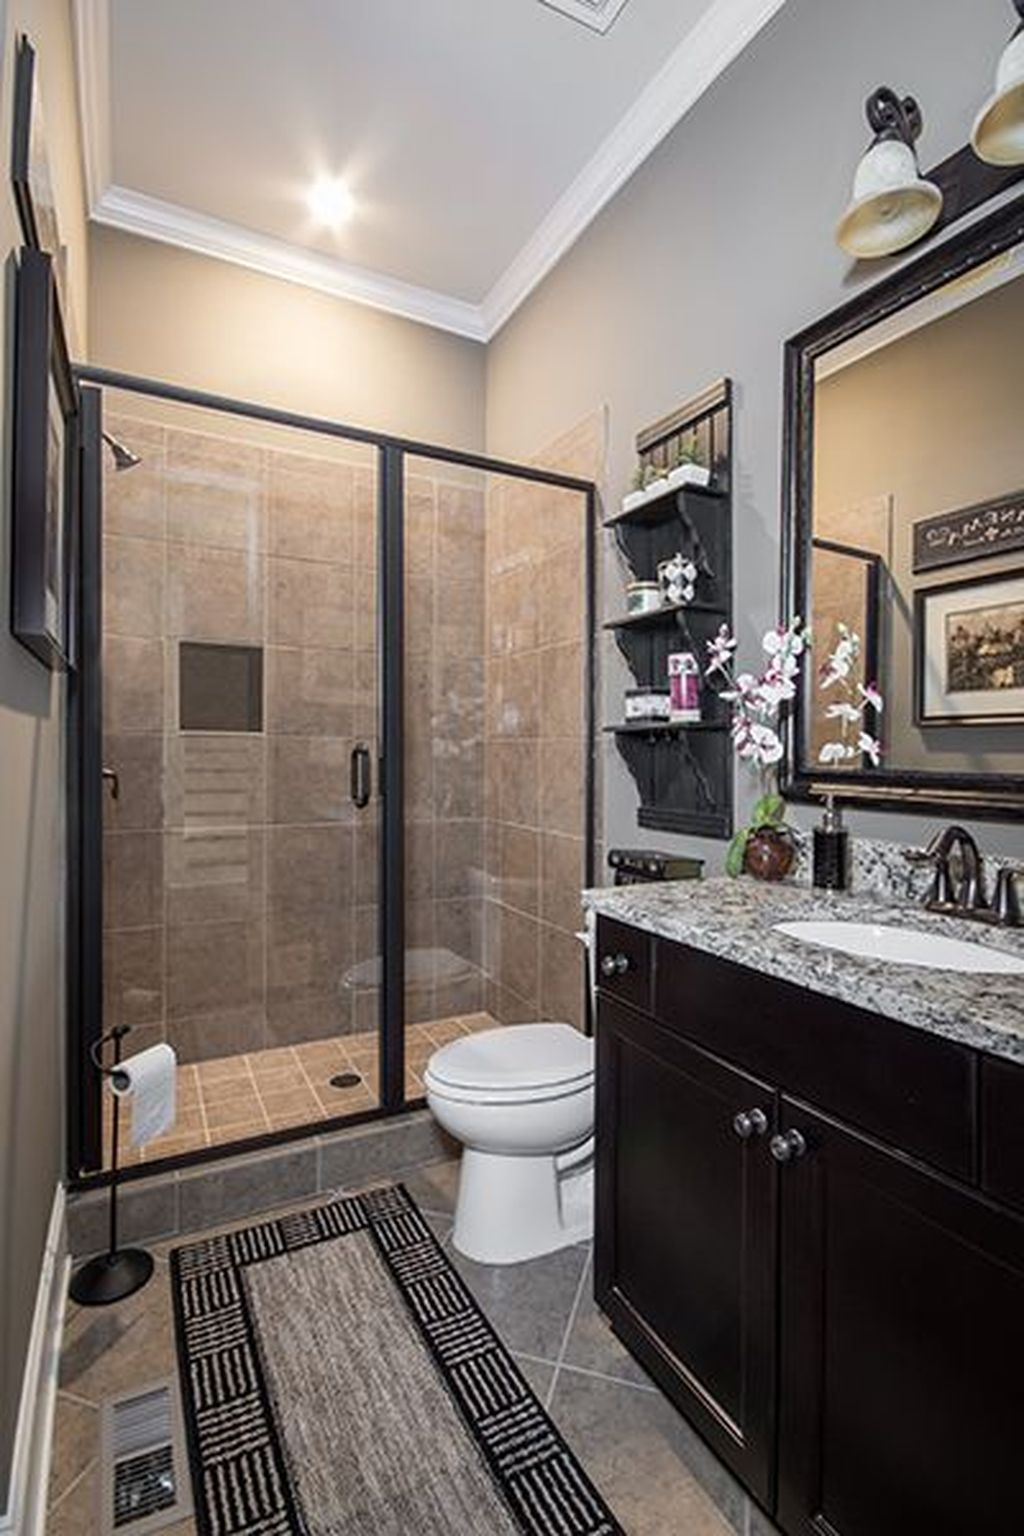 20+ Gorgeous Small Bathroom Remodel Ideas On A Budget images